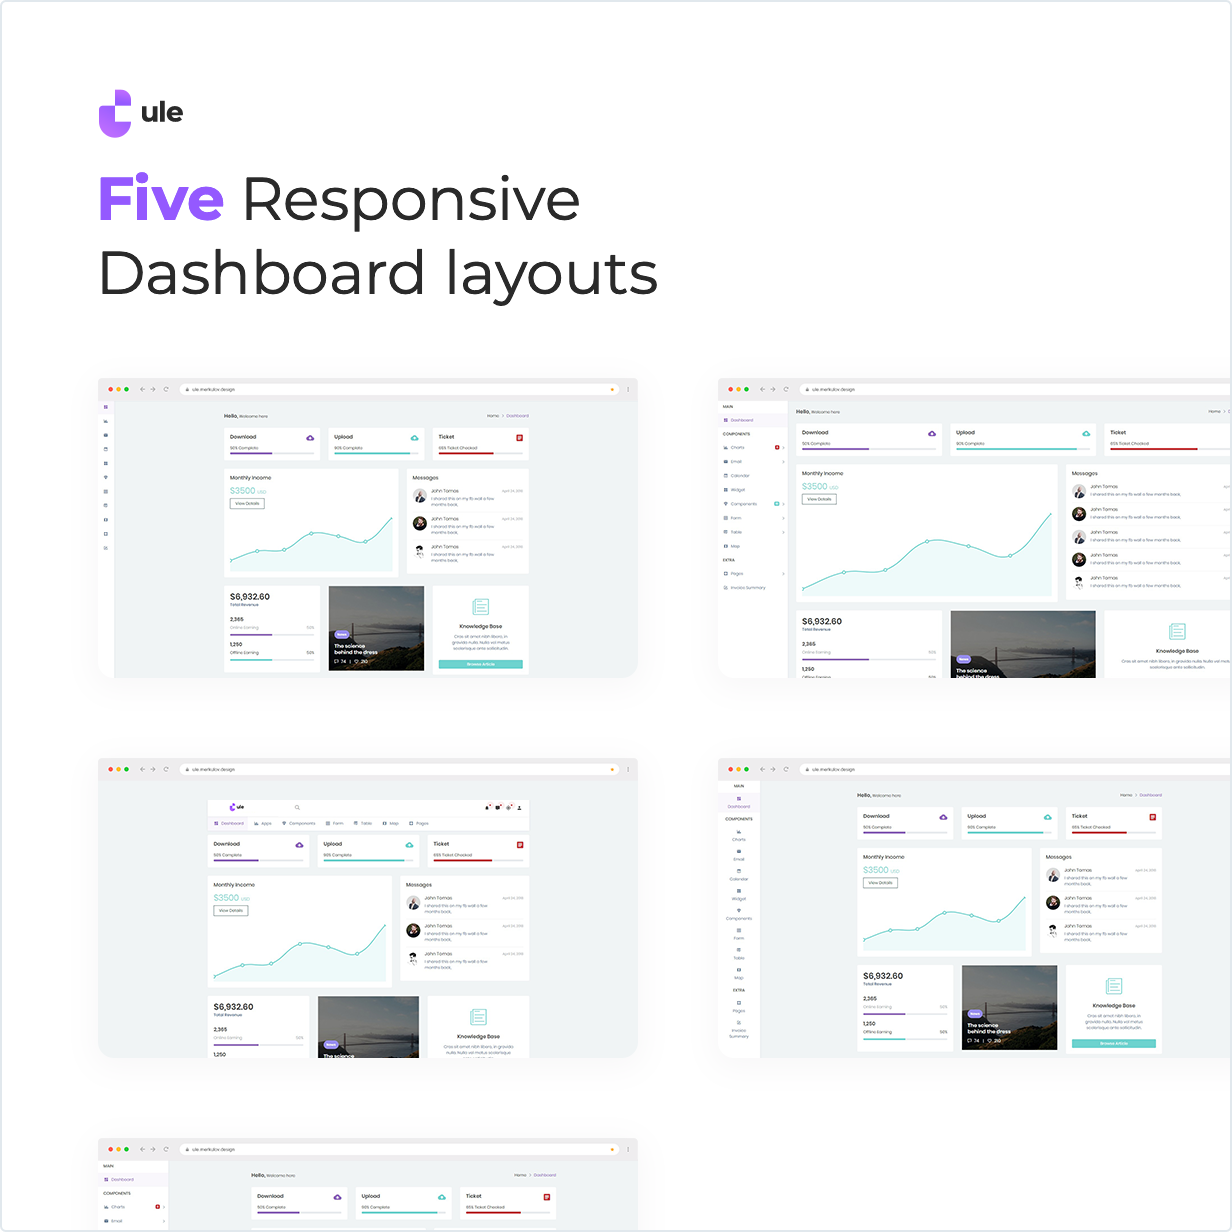 Ule Bootstrap Dashboard has Five Responsive Dashboard Layouts